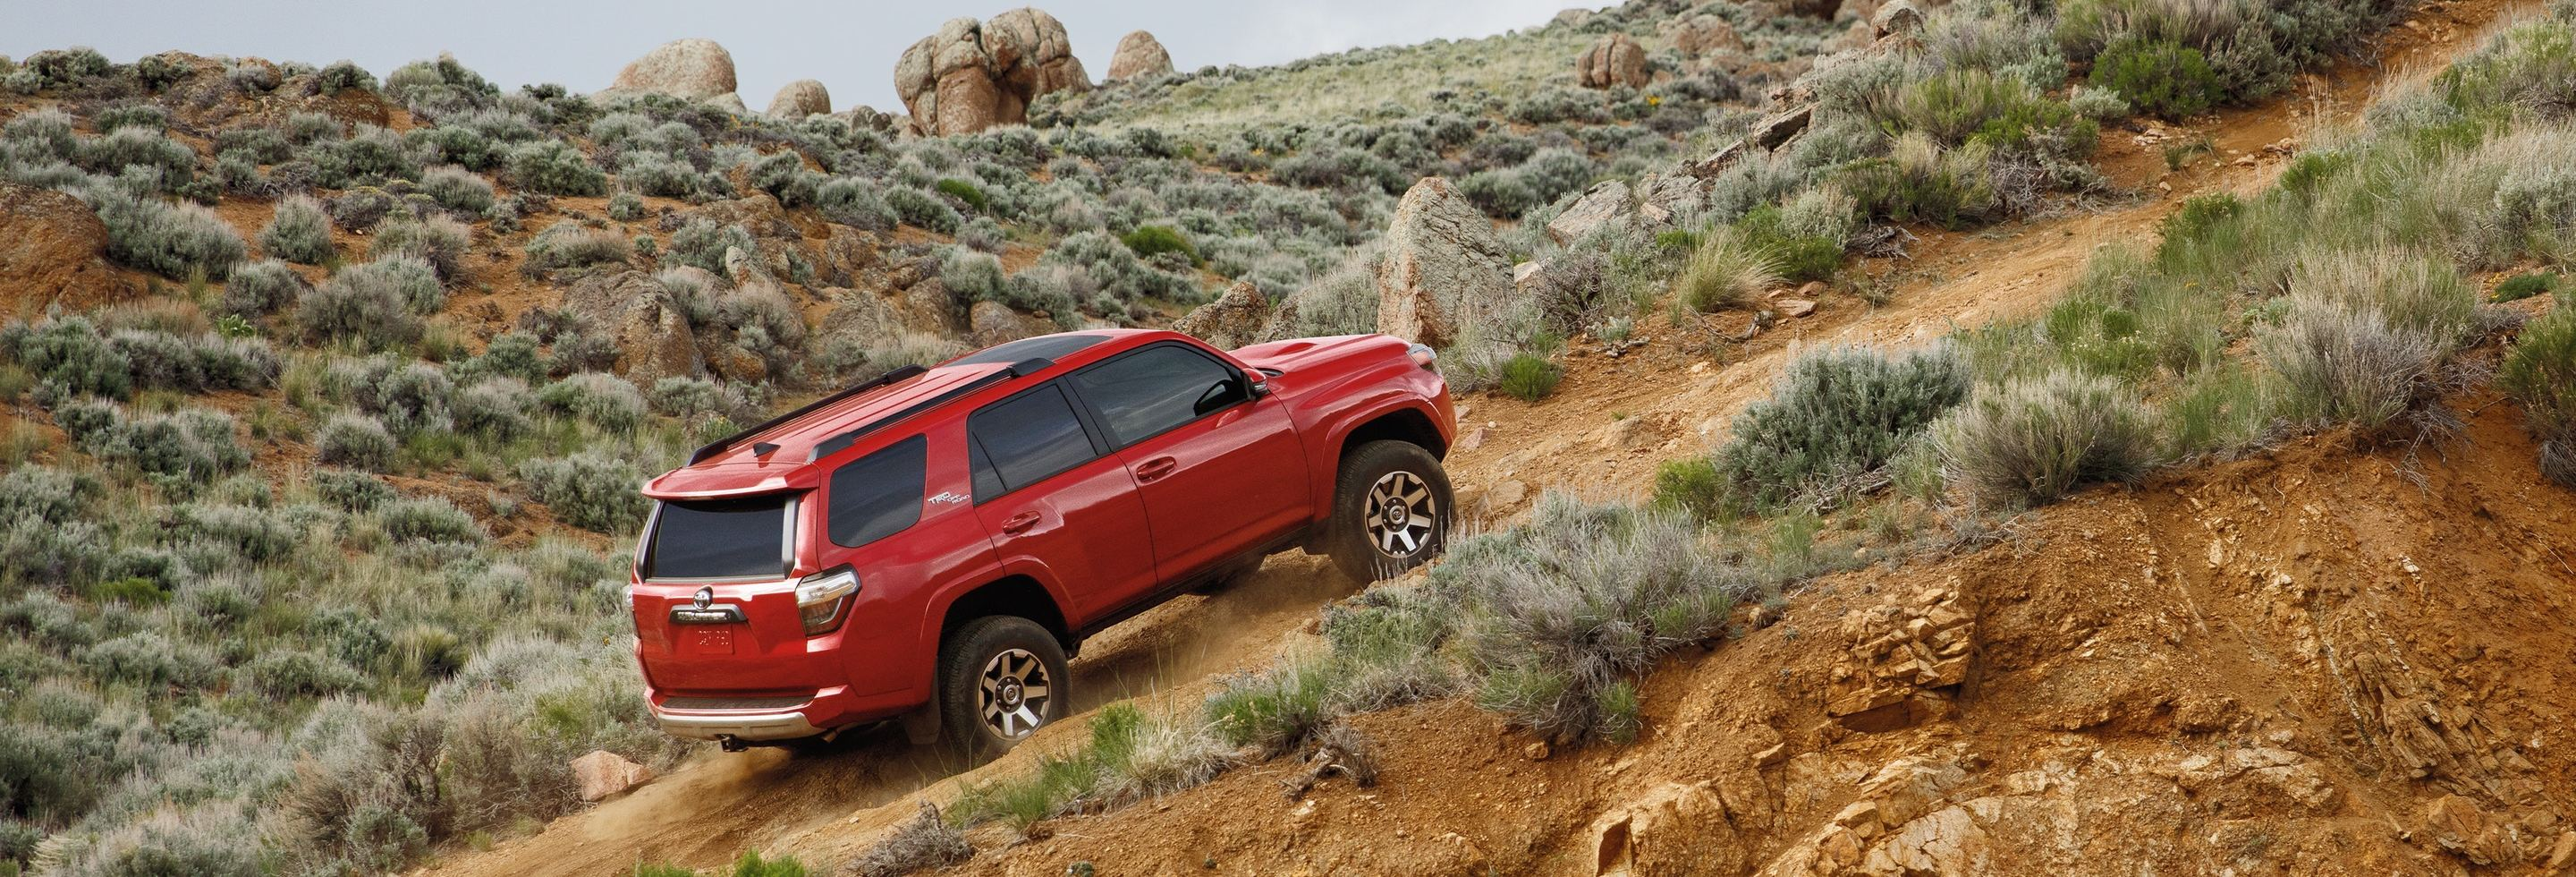 2020 Toyota 4Runner for Sale in Tinley Park, IL